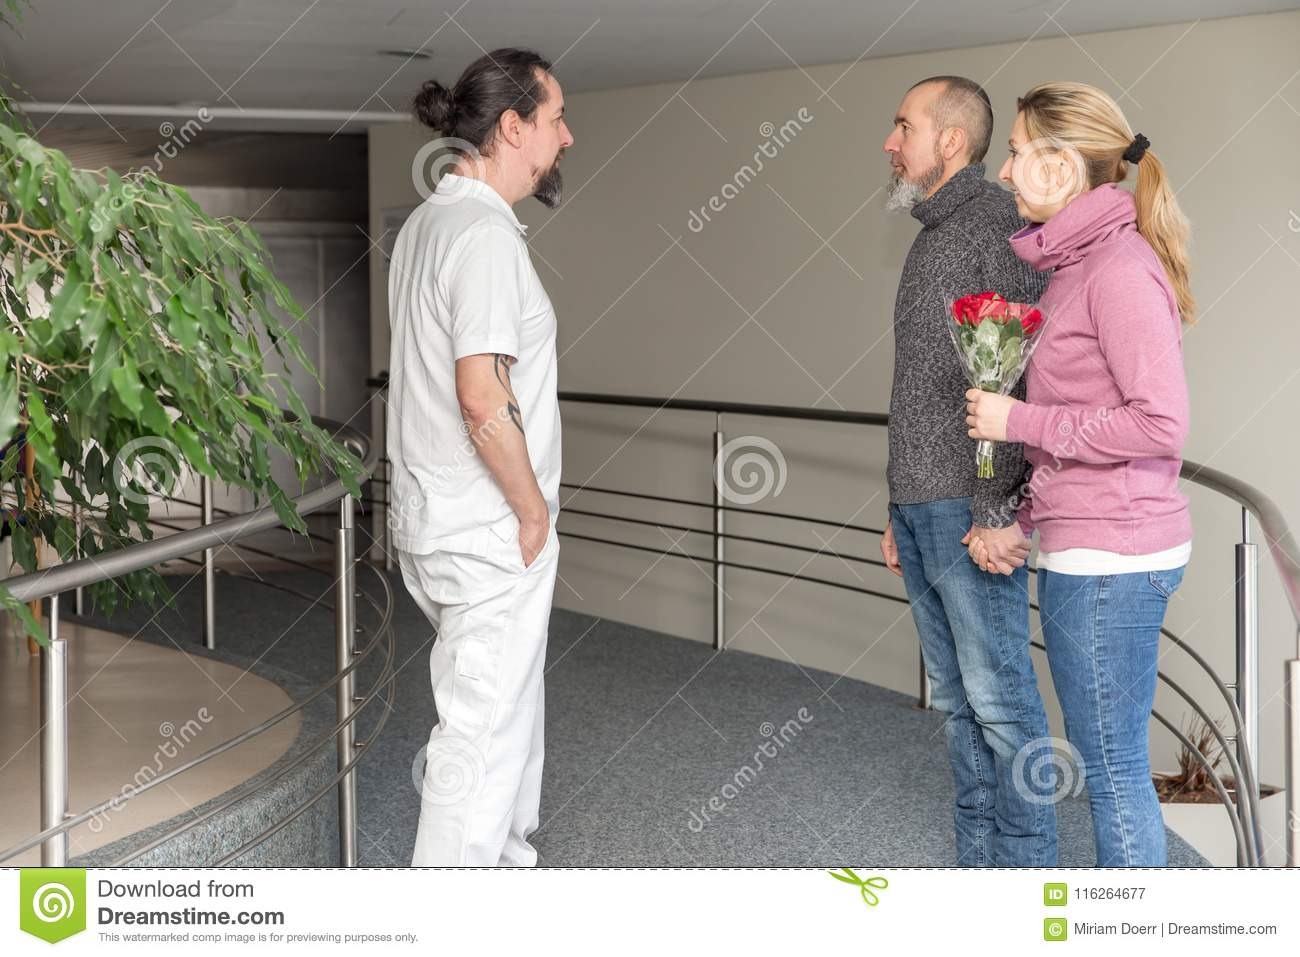 Male nurse with two visitors in a corridor